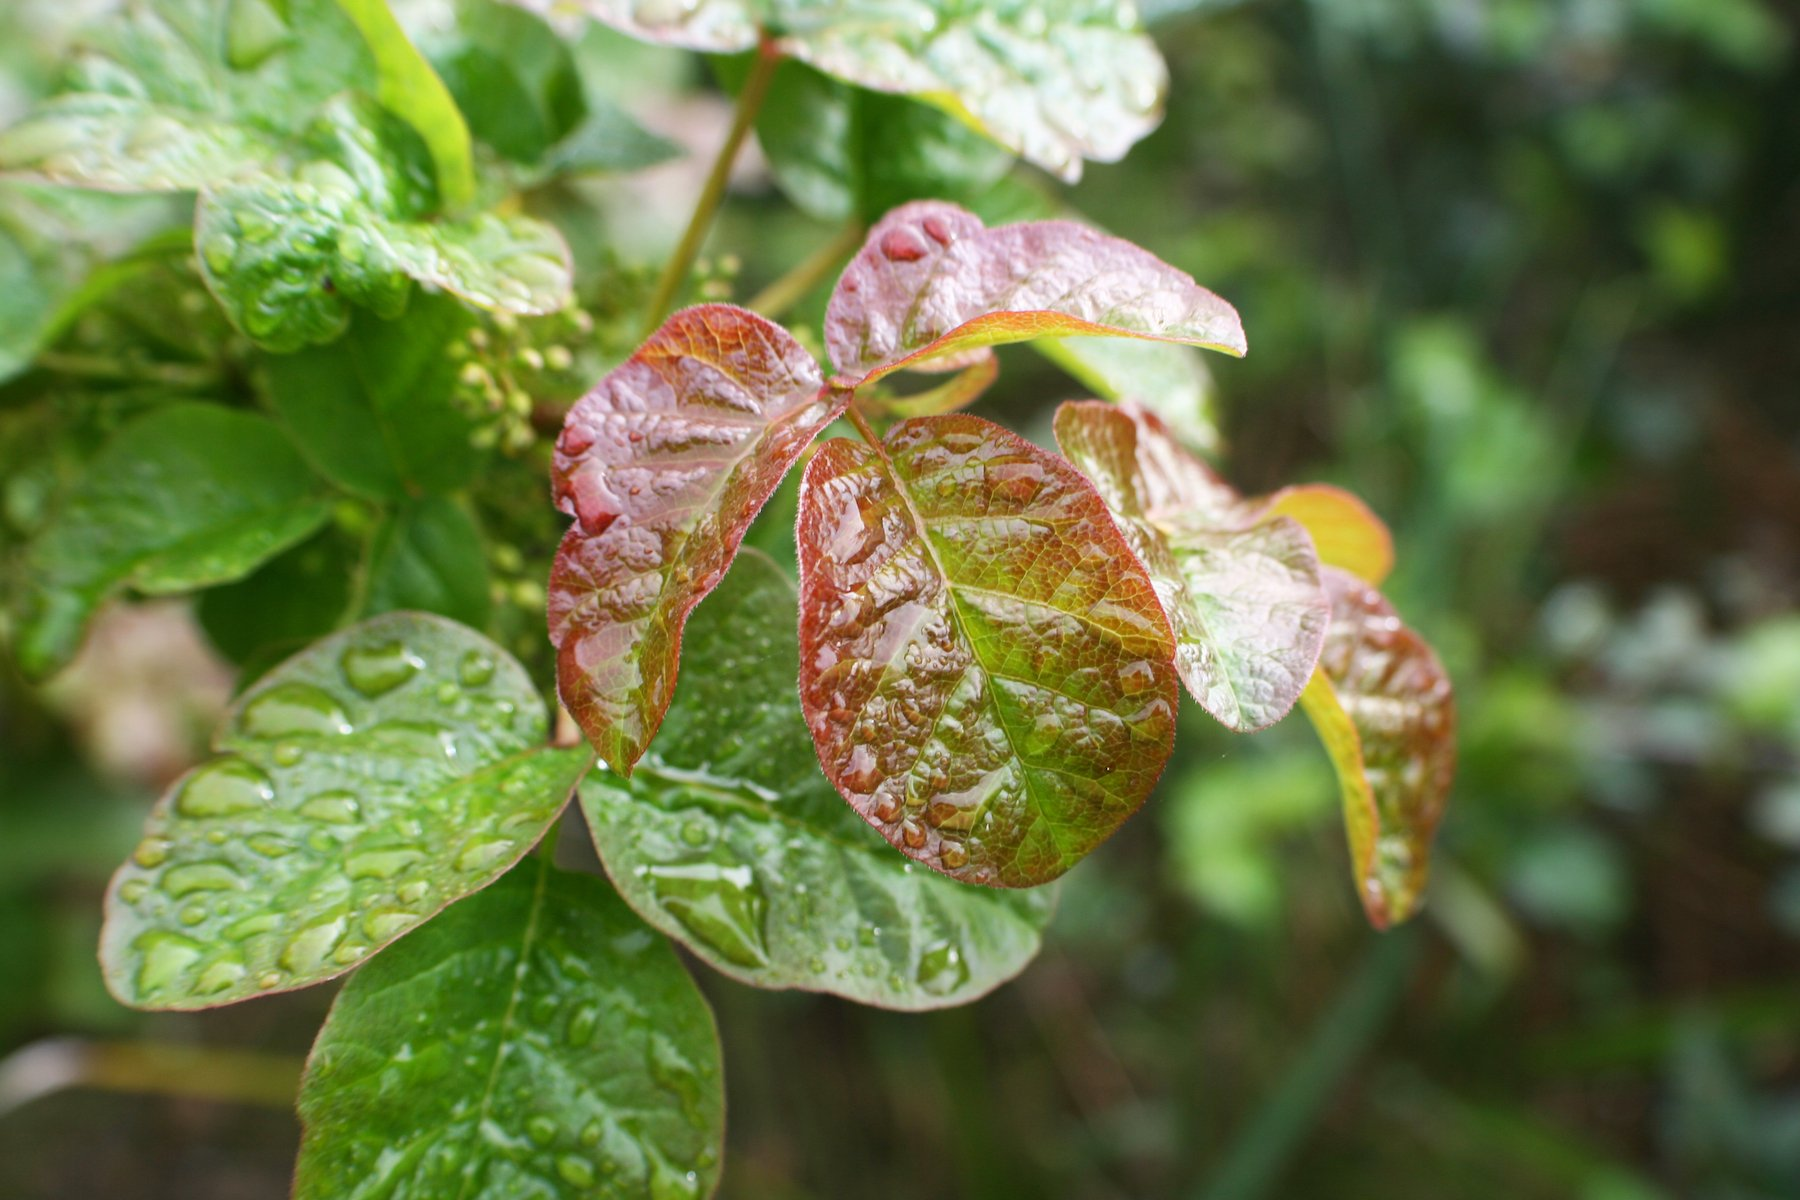 Top Poisonous Plants to Look Out for in the Wild